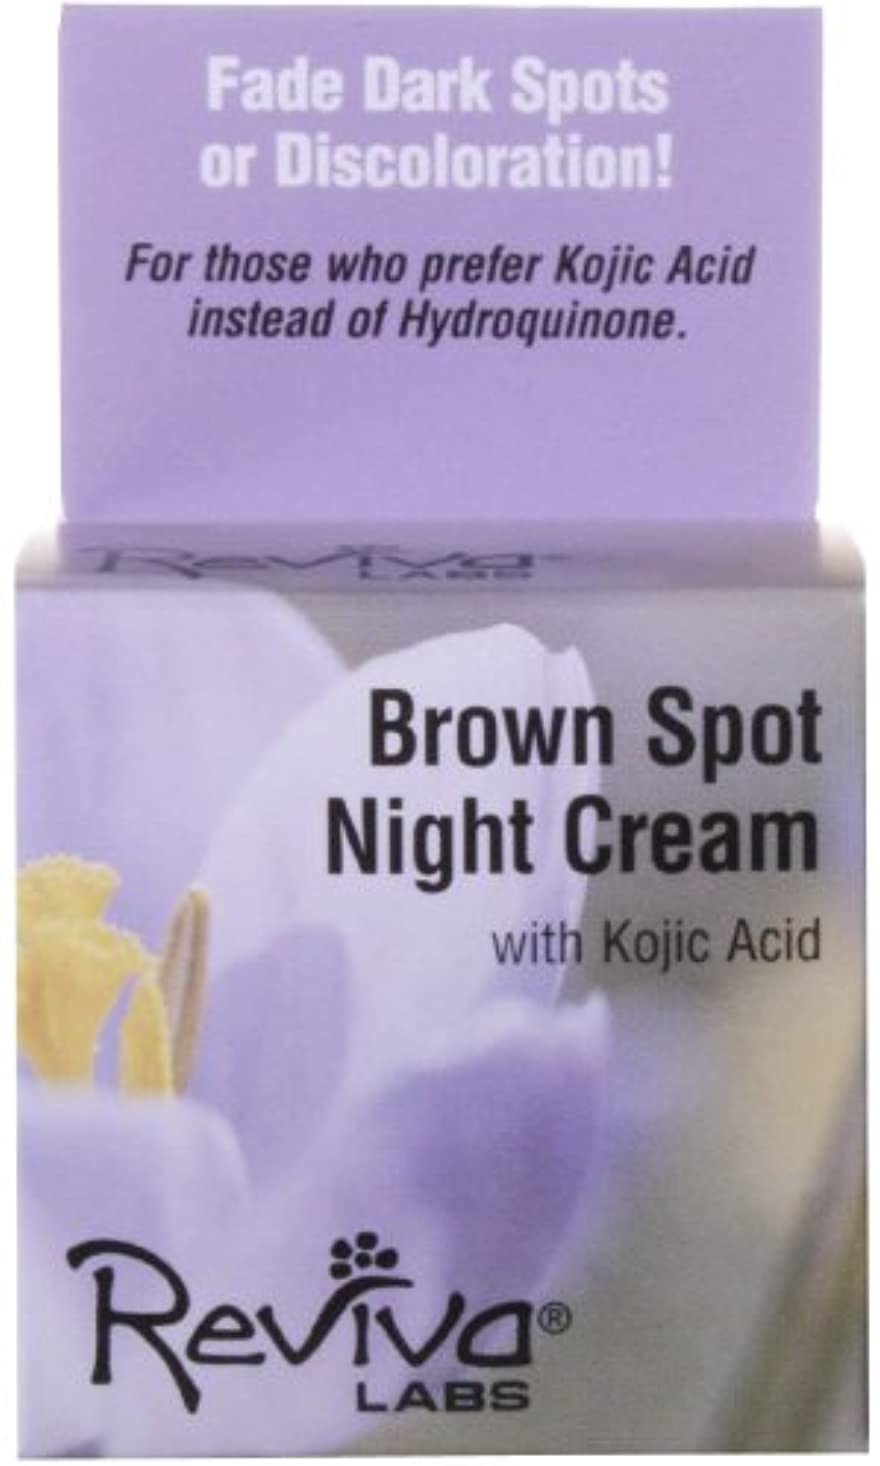 ピニオンテント狐海外直送品 Reviva Brown Spot Night Cream, with Kojic Acid EA 1/1 OZ